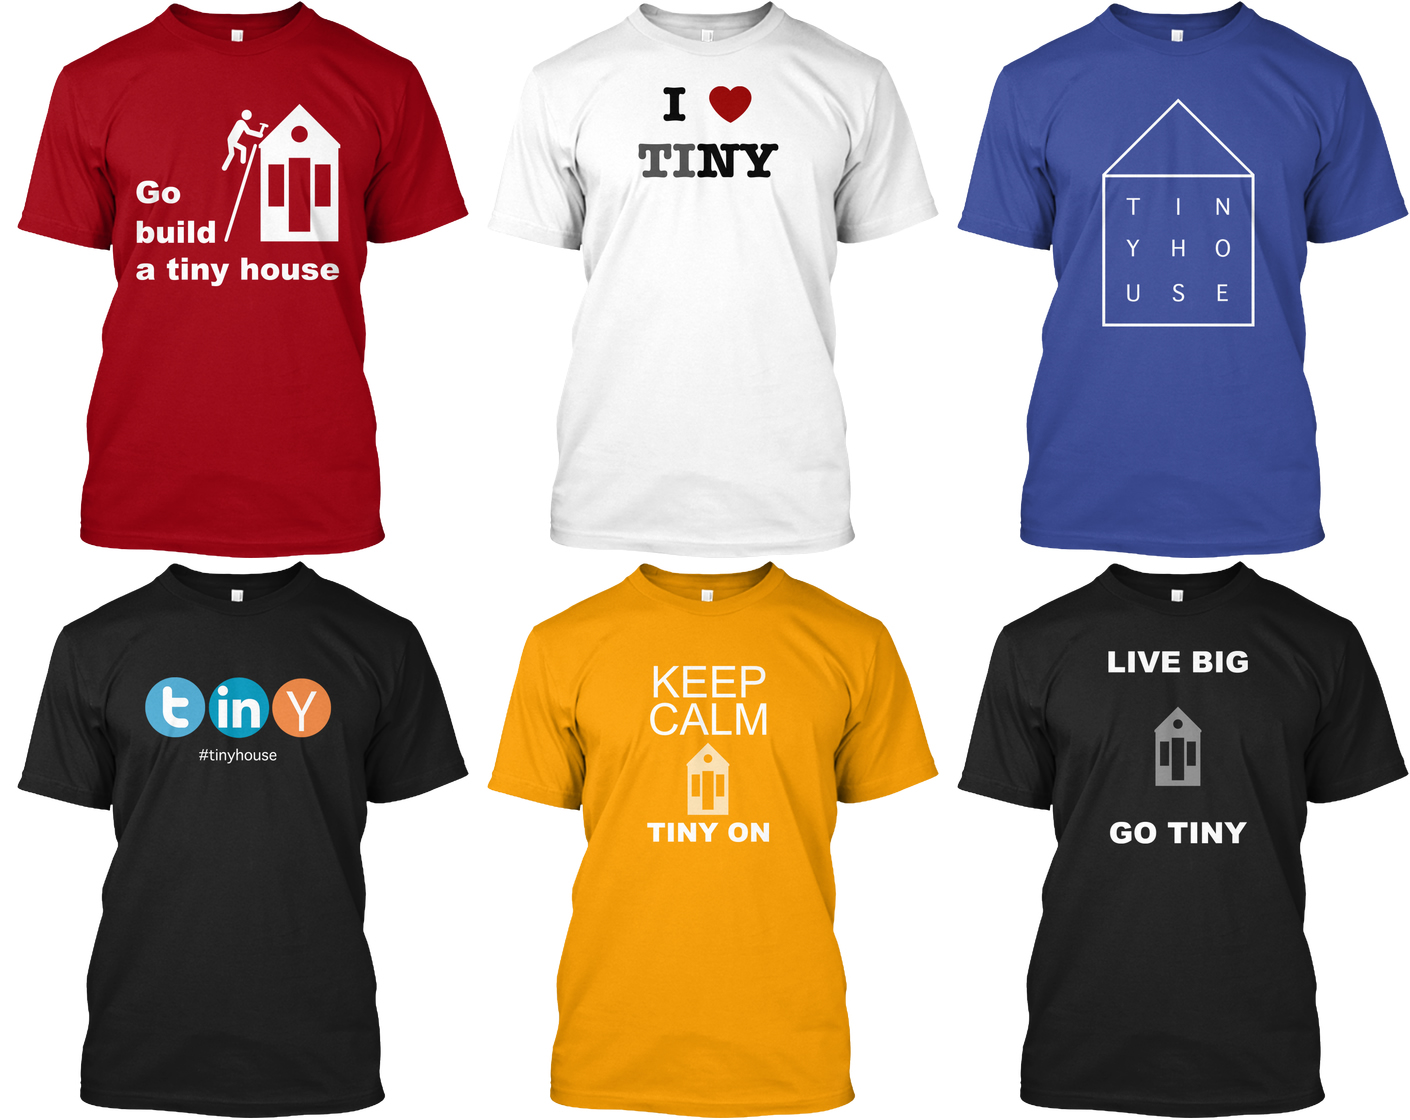 tiny house tshirts just for fun